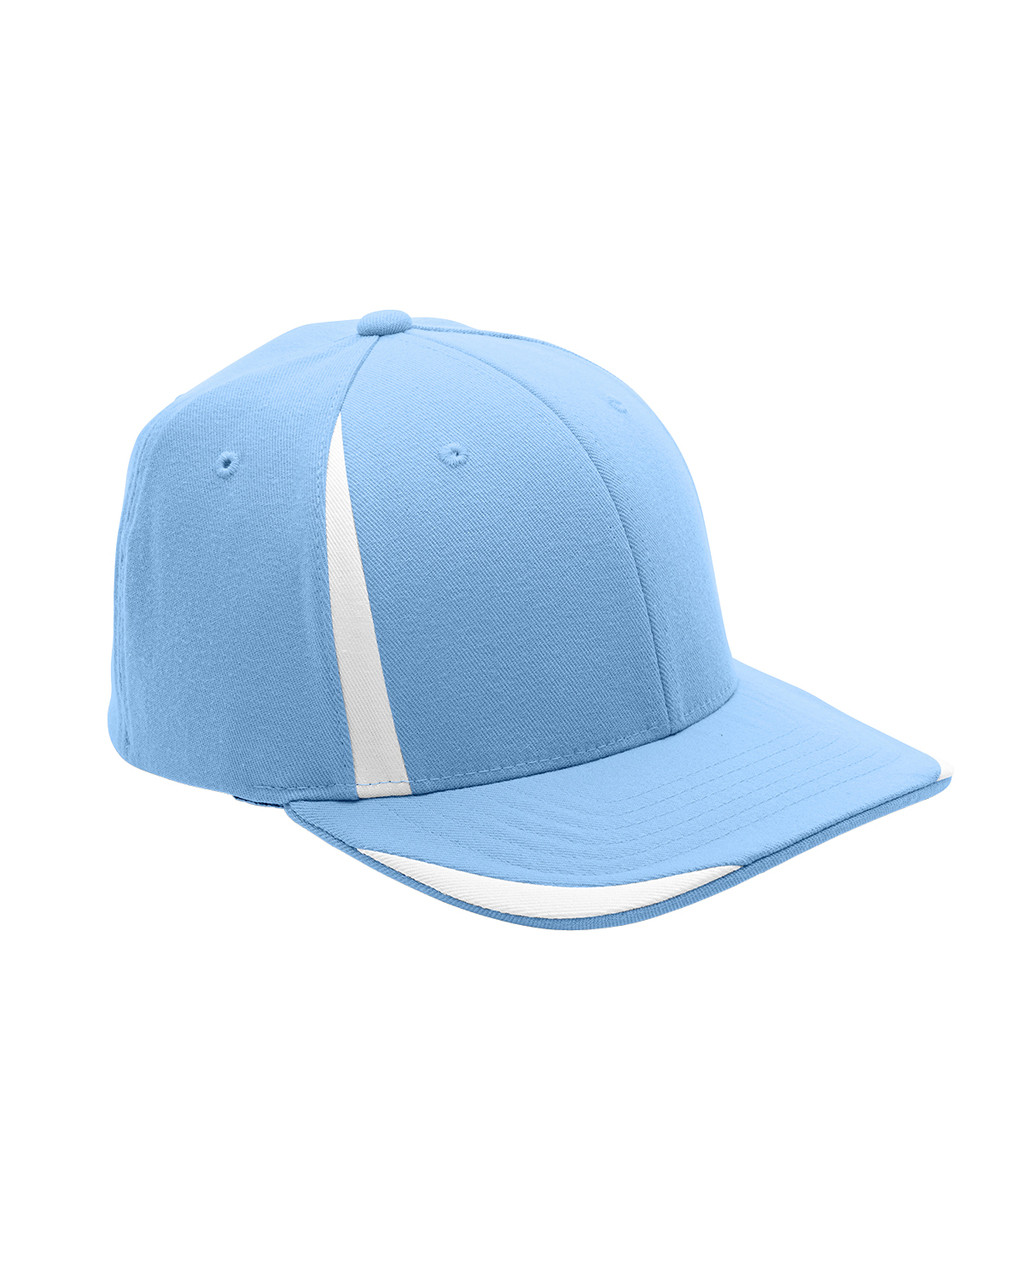 Light Blue/White - ATB102 Flexfit for Team 365 Pro-Formance Front Sweep Cap